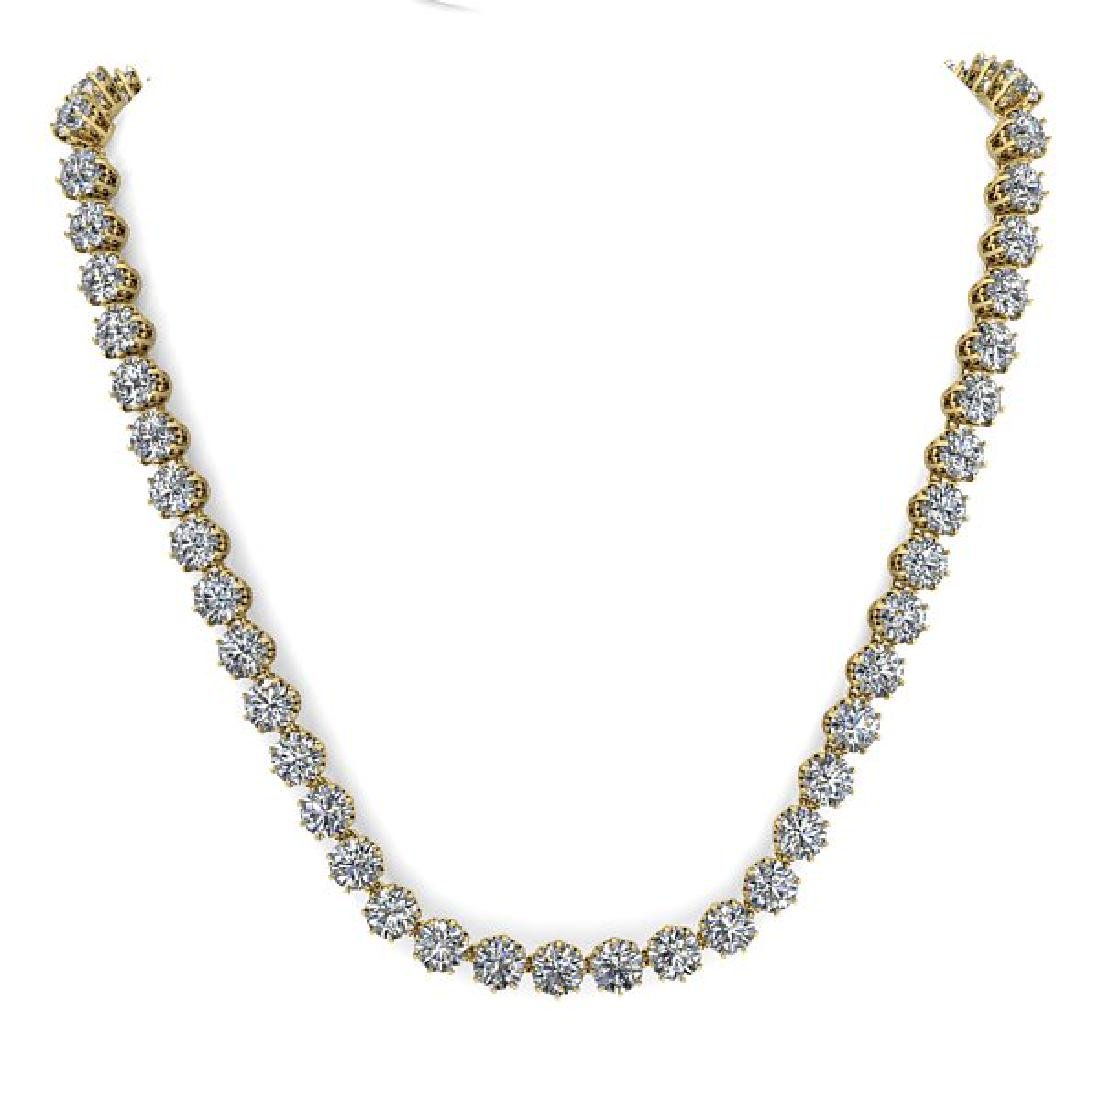 40 CTW SI Certified Diamond Necklace 14K Yellow Gold - 3